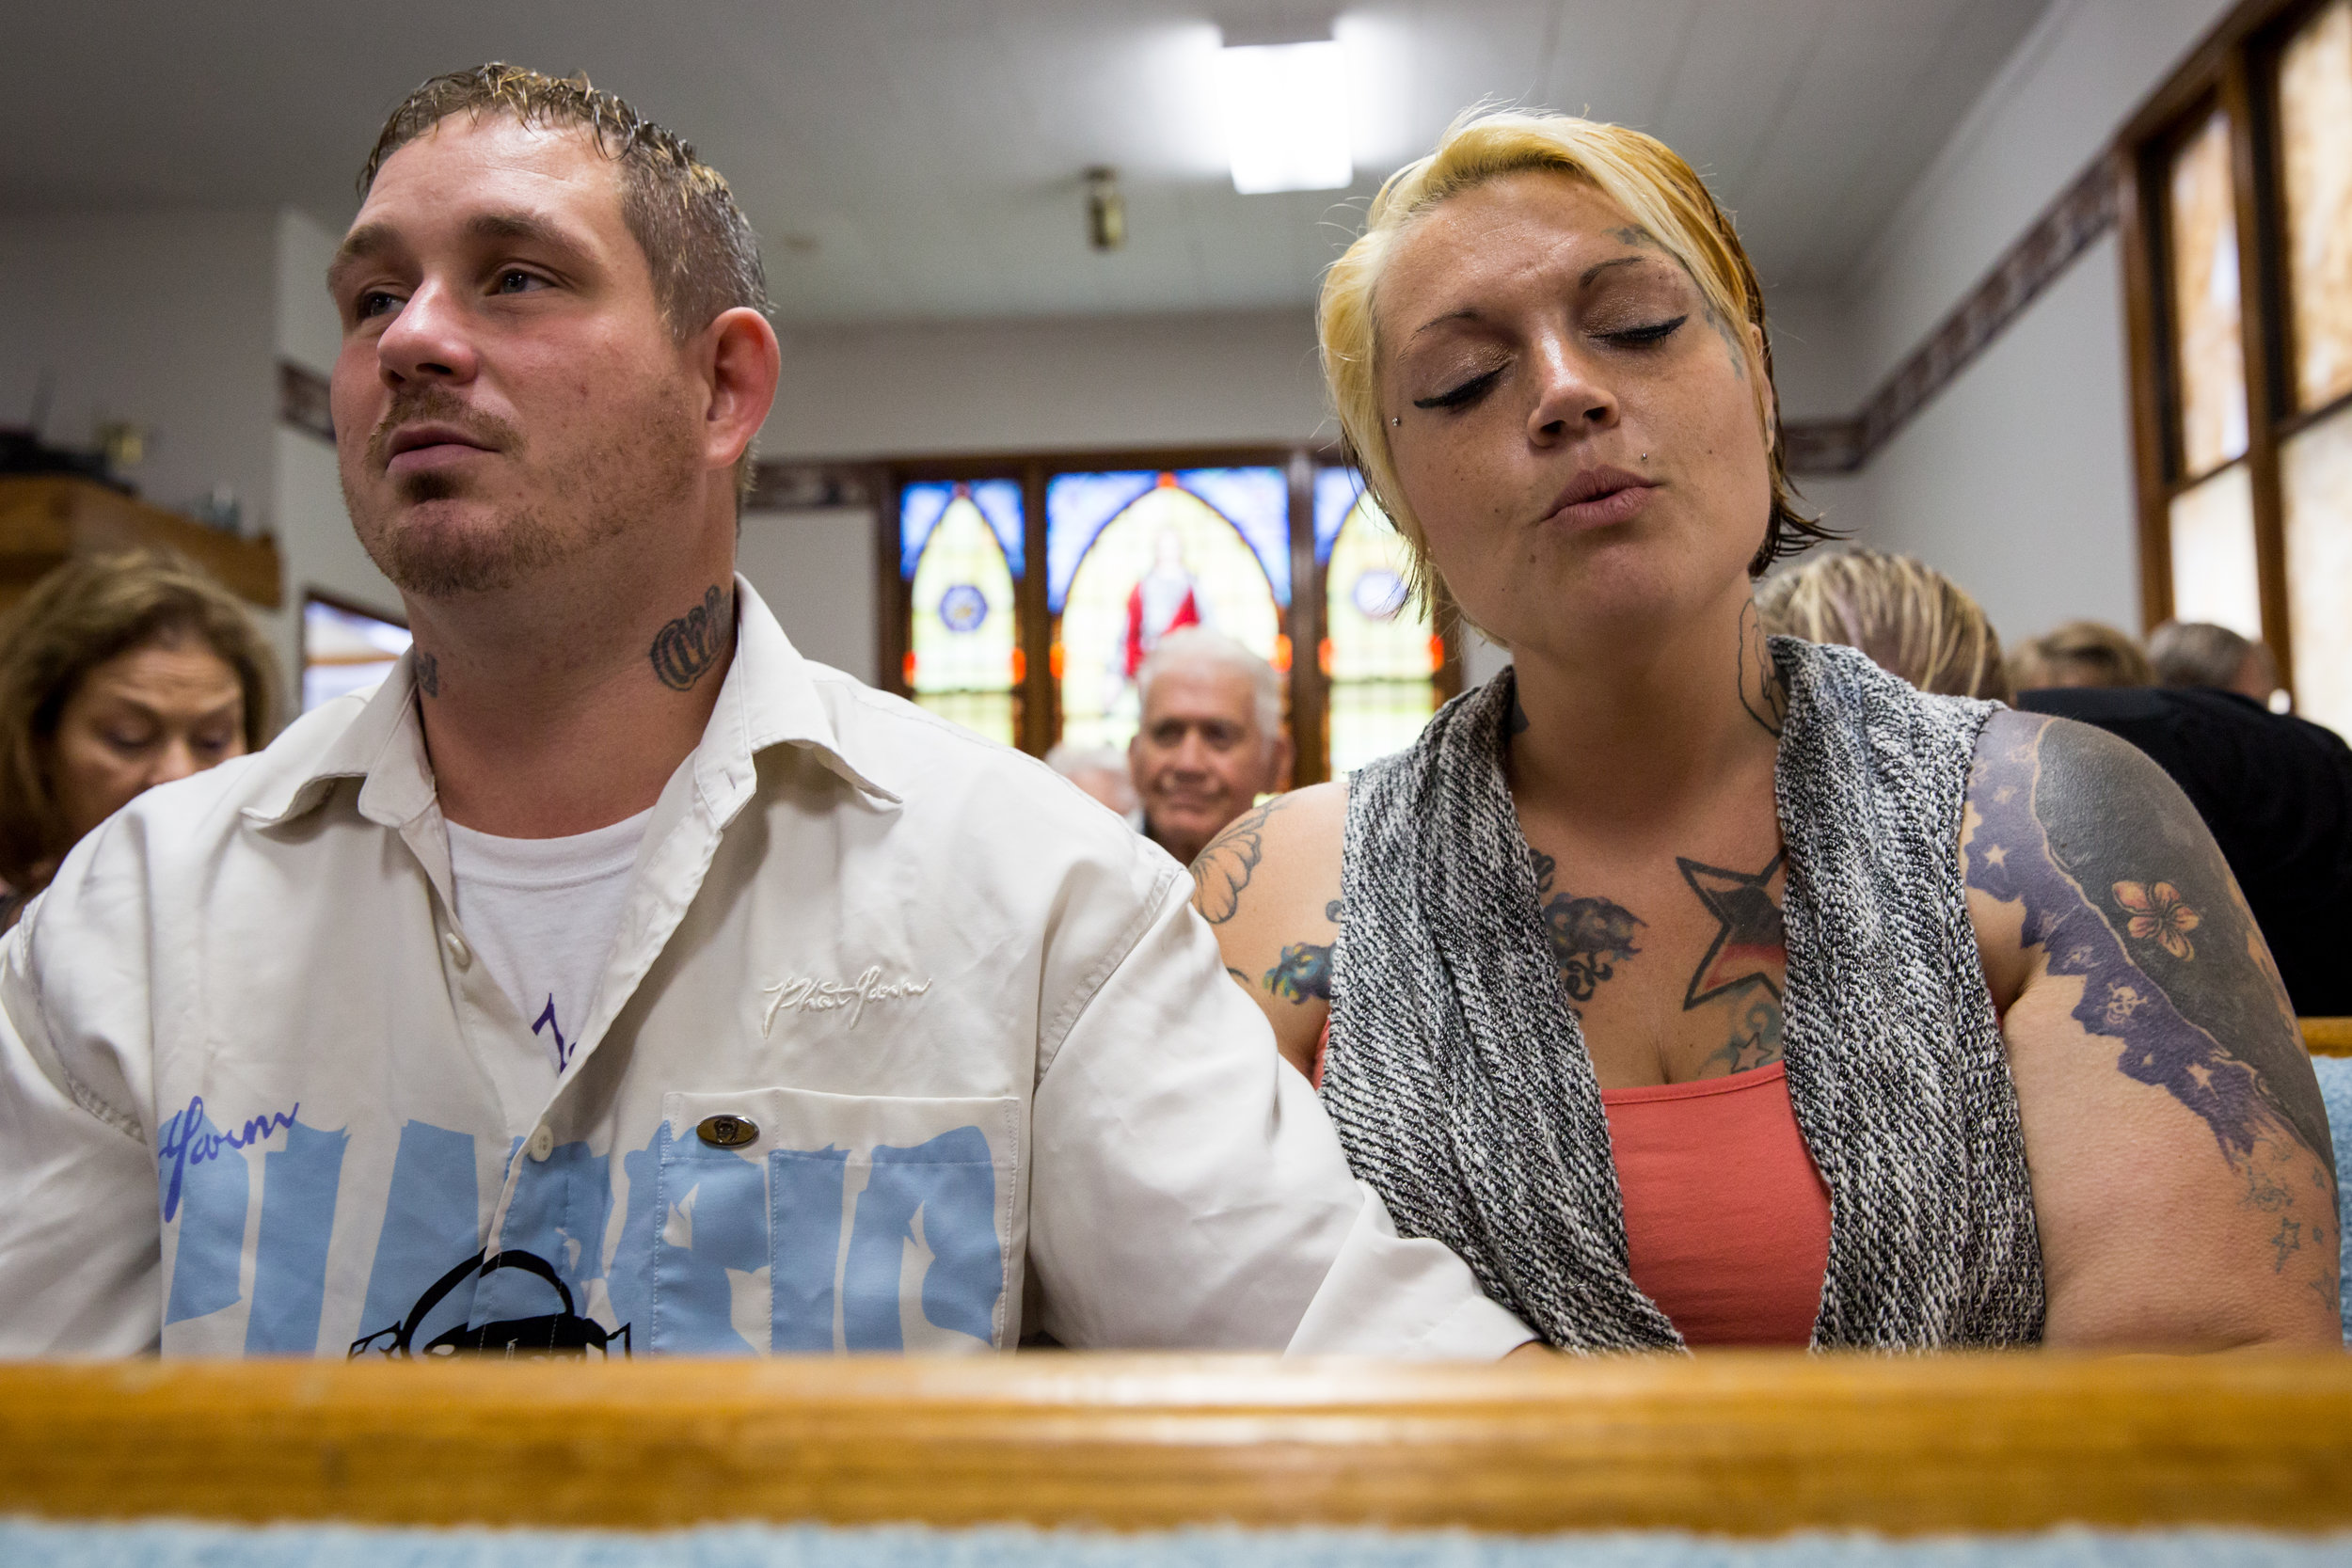 Whitney and Jeremy sing along during a church service at Freedom Memorial Church in Logan. Whitney used to frequent the church but had a falling out with some of the members and had been going elsewhere for a few months.